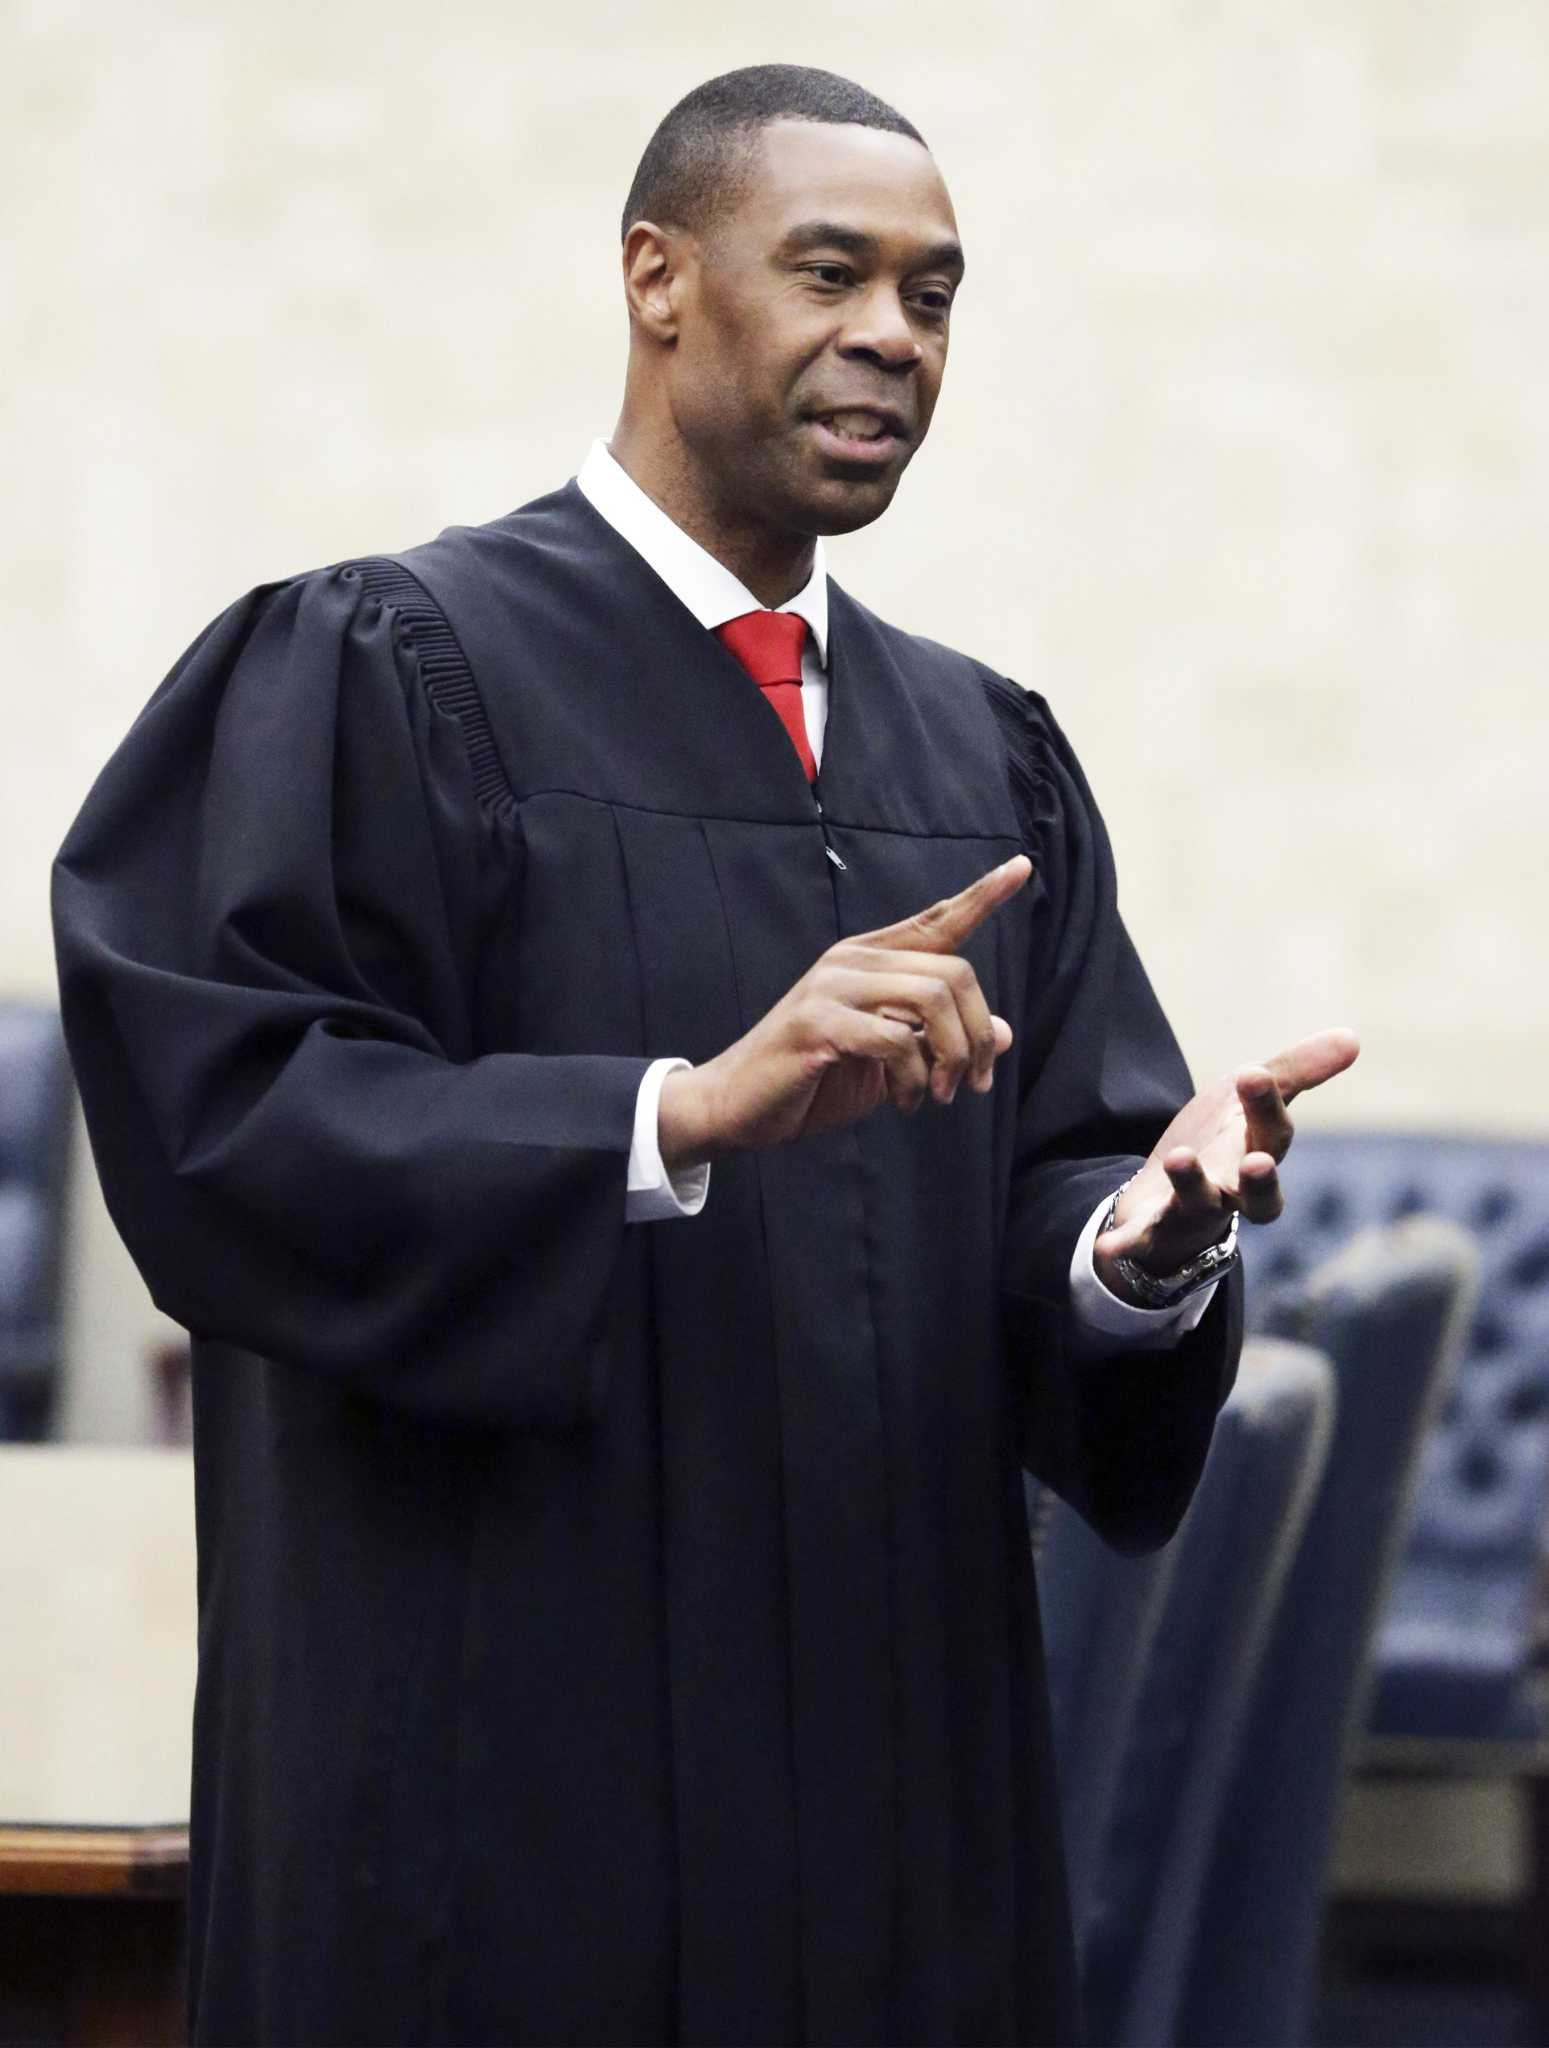 Pulliam excellent choice for federal bench